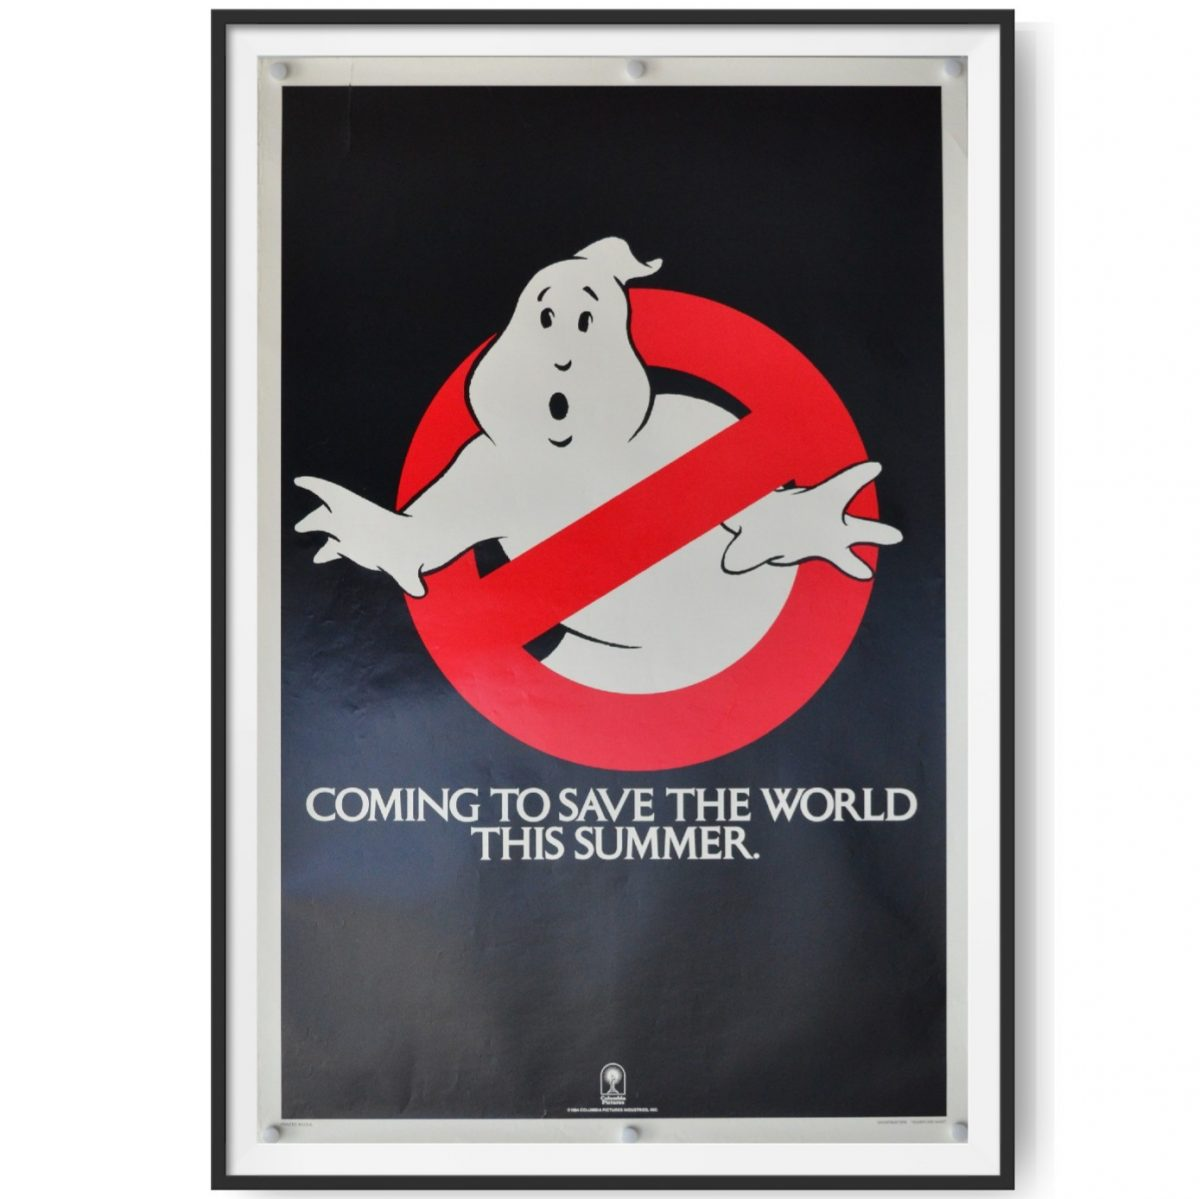 This is a framed advance US One Sheet poster for the 1989 film Ghostbusters. The poster features the famous Ghostbusters Logo with a 'No Ghost' sign.